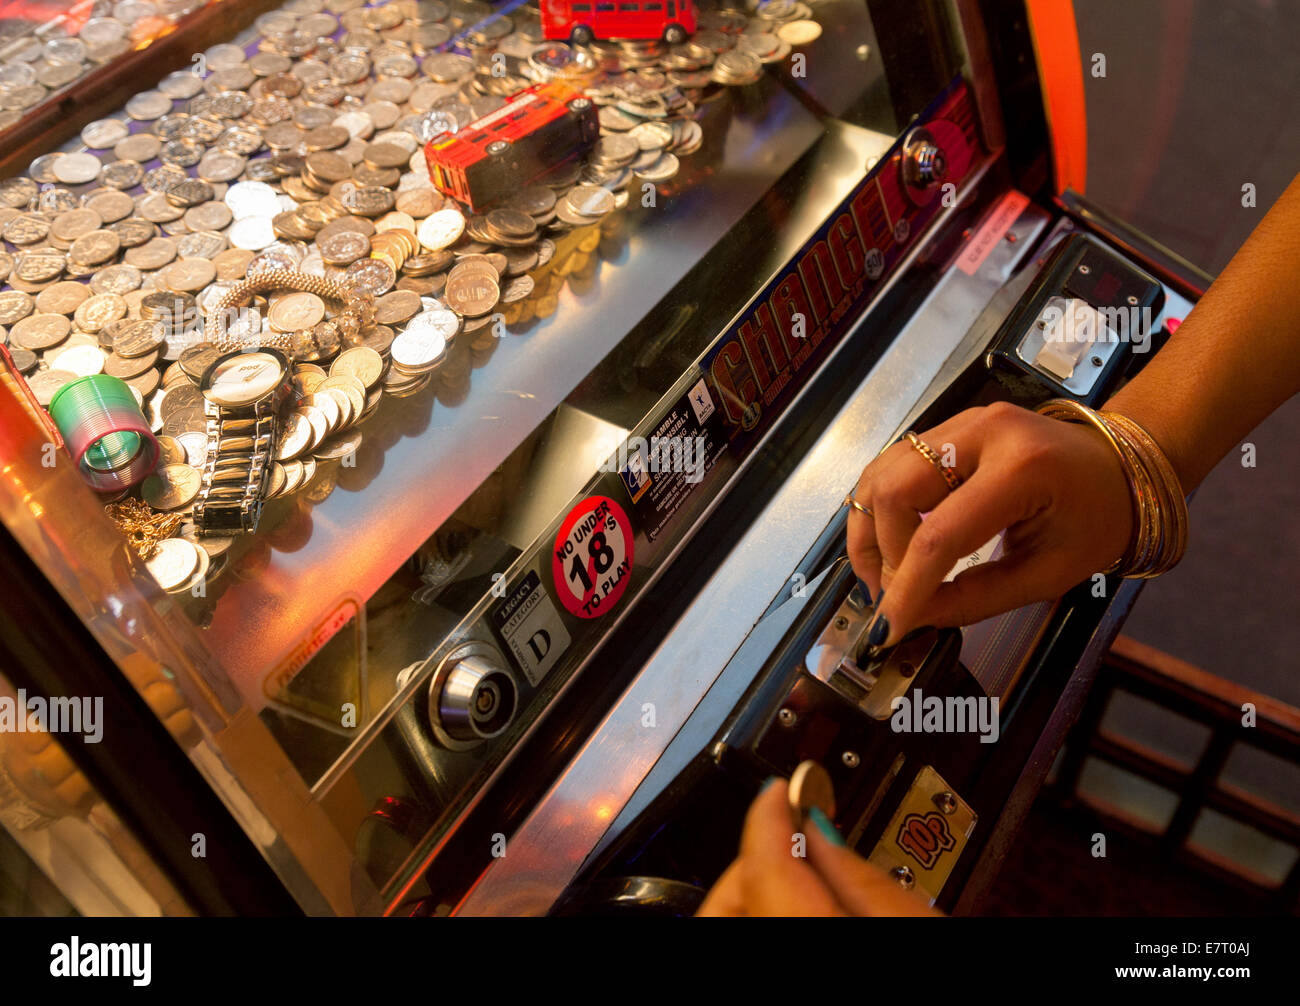 Women putting coins into a gambling machine in an amusement arcade, London UK - Stock Image